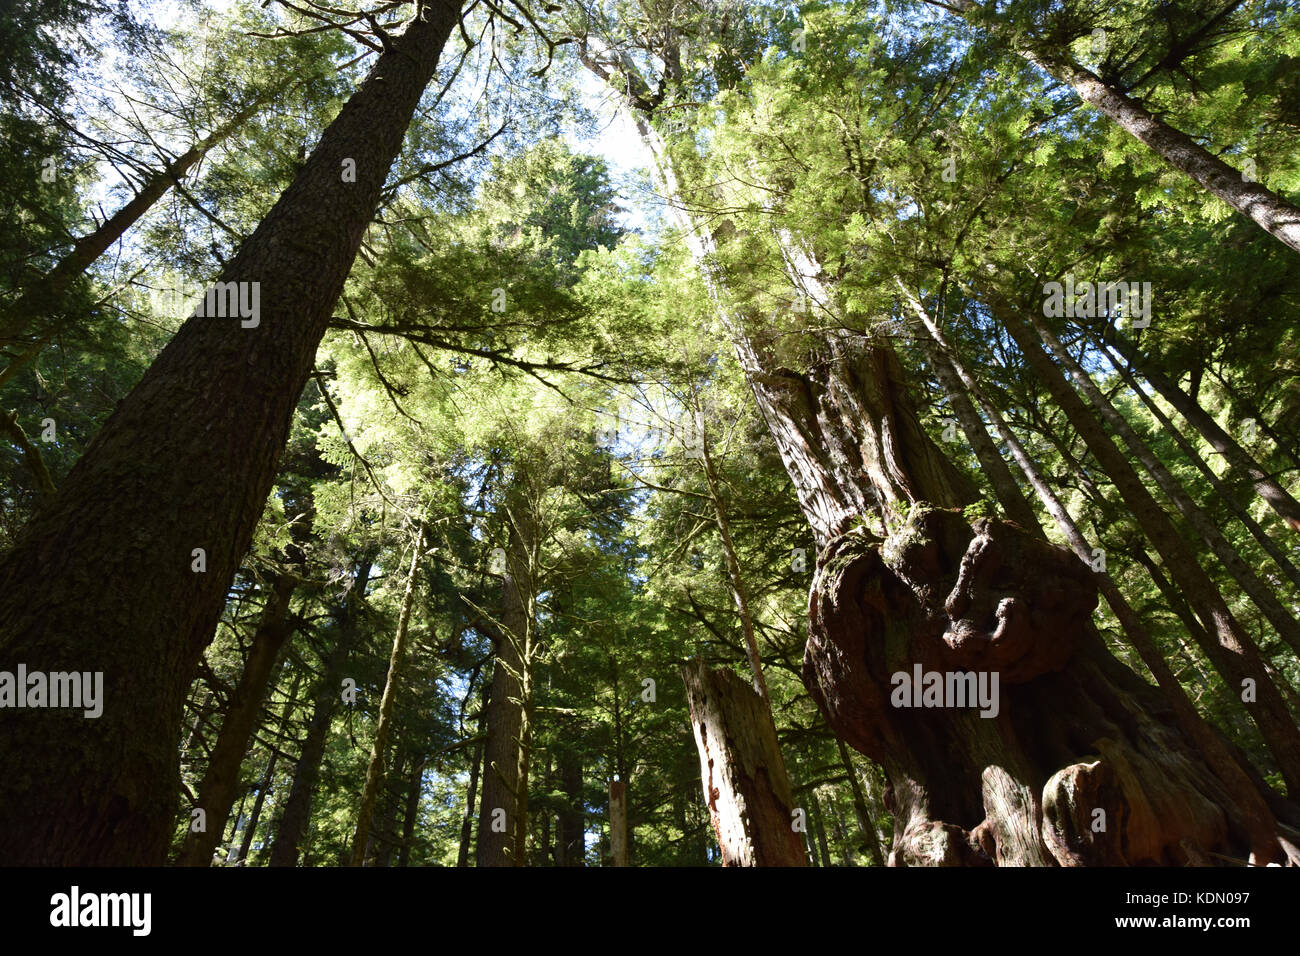 Avatar Grove with its majestic old-growth forest was only recently discovered by loggers and m - Stock Image